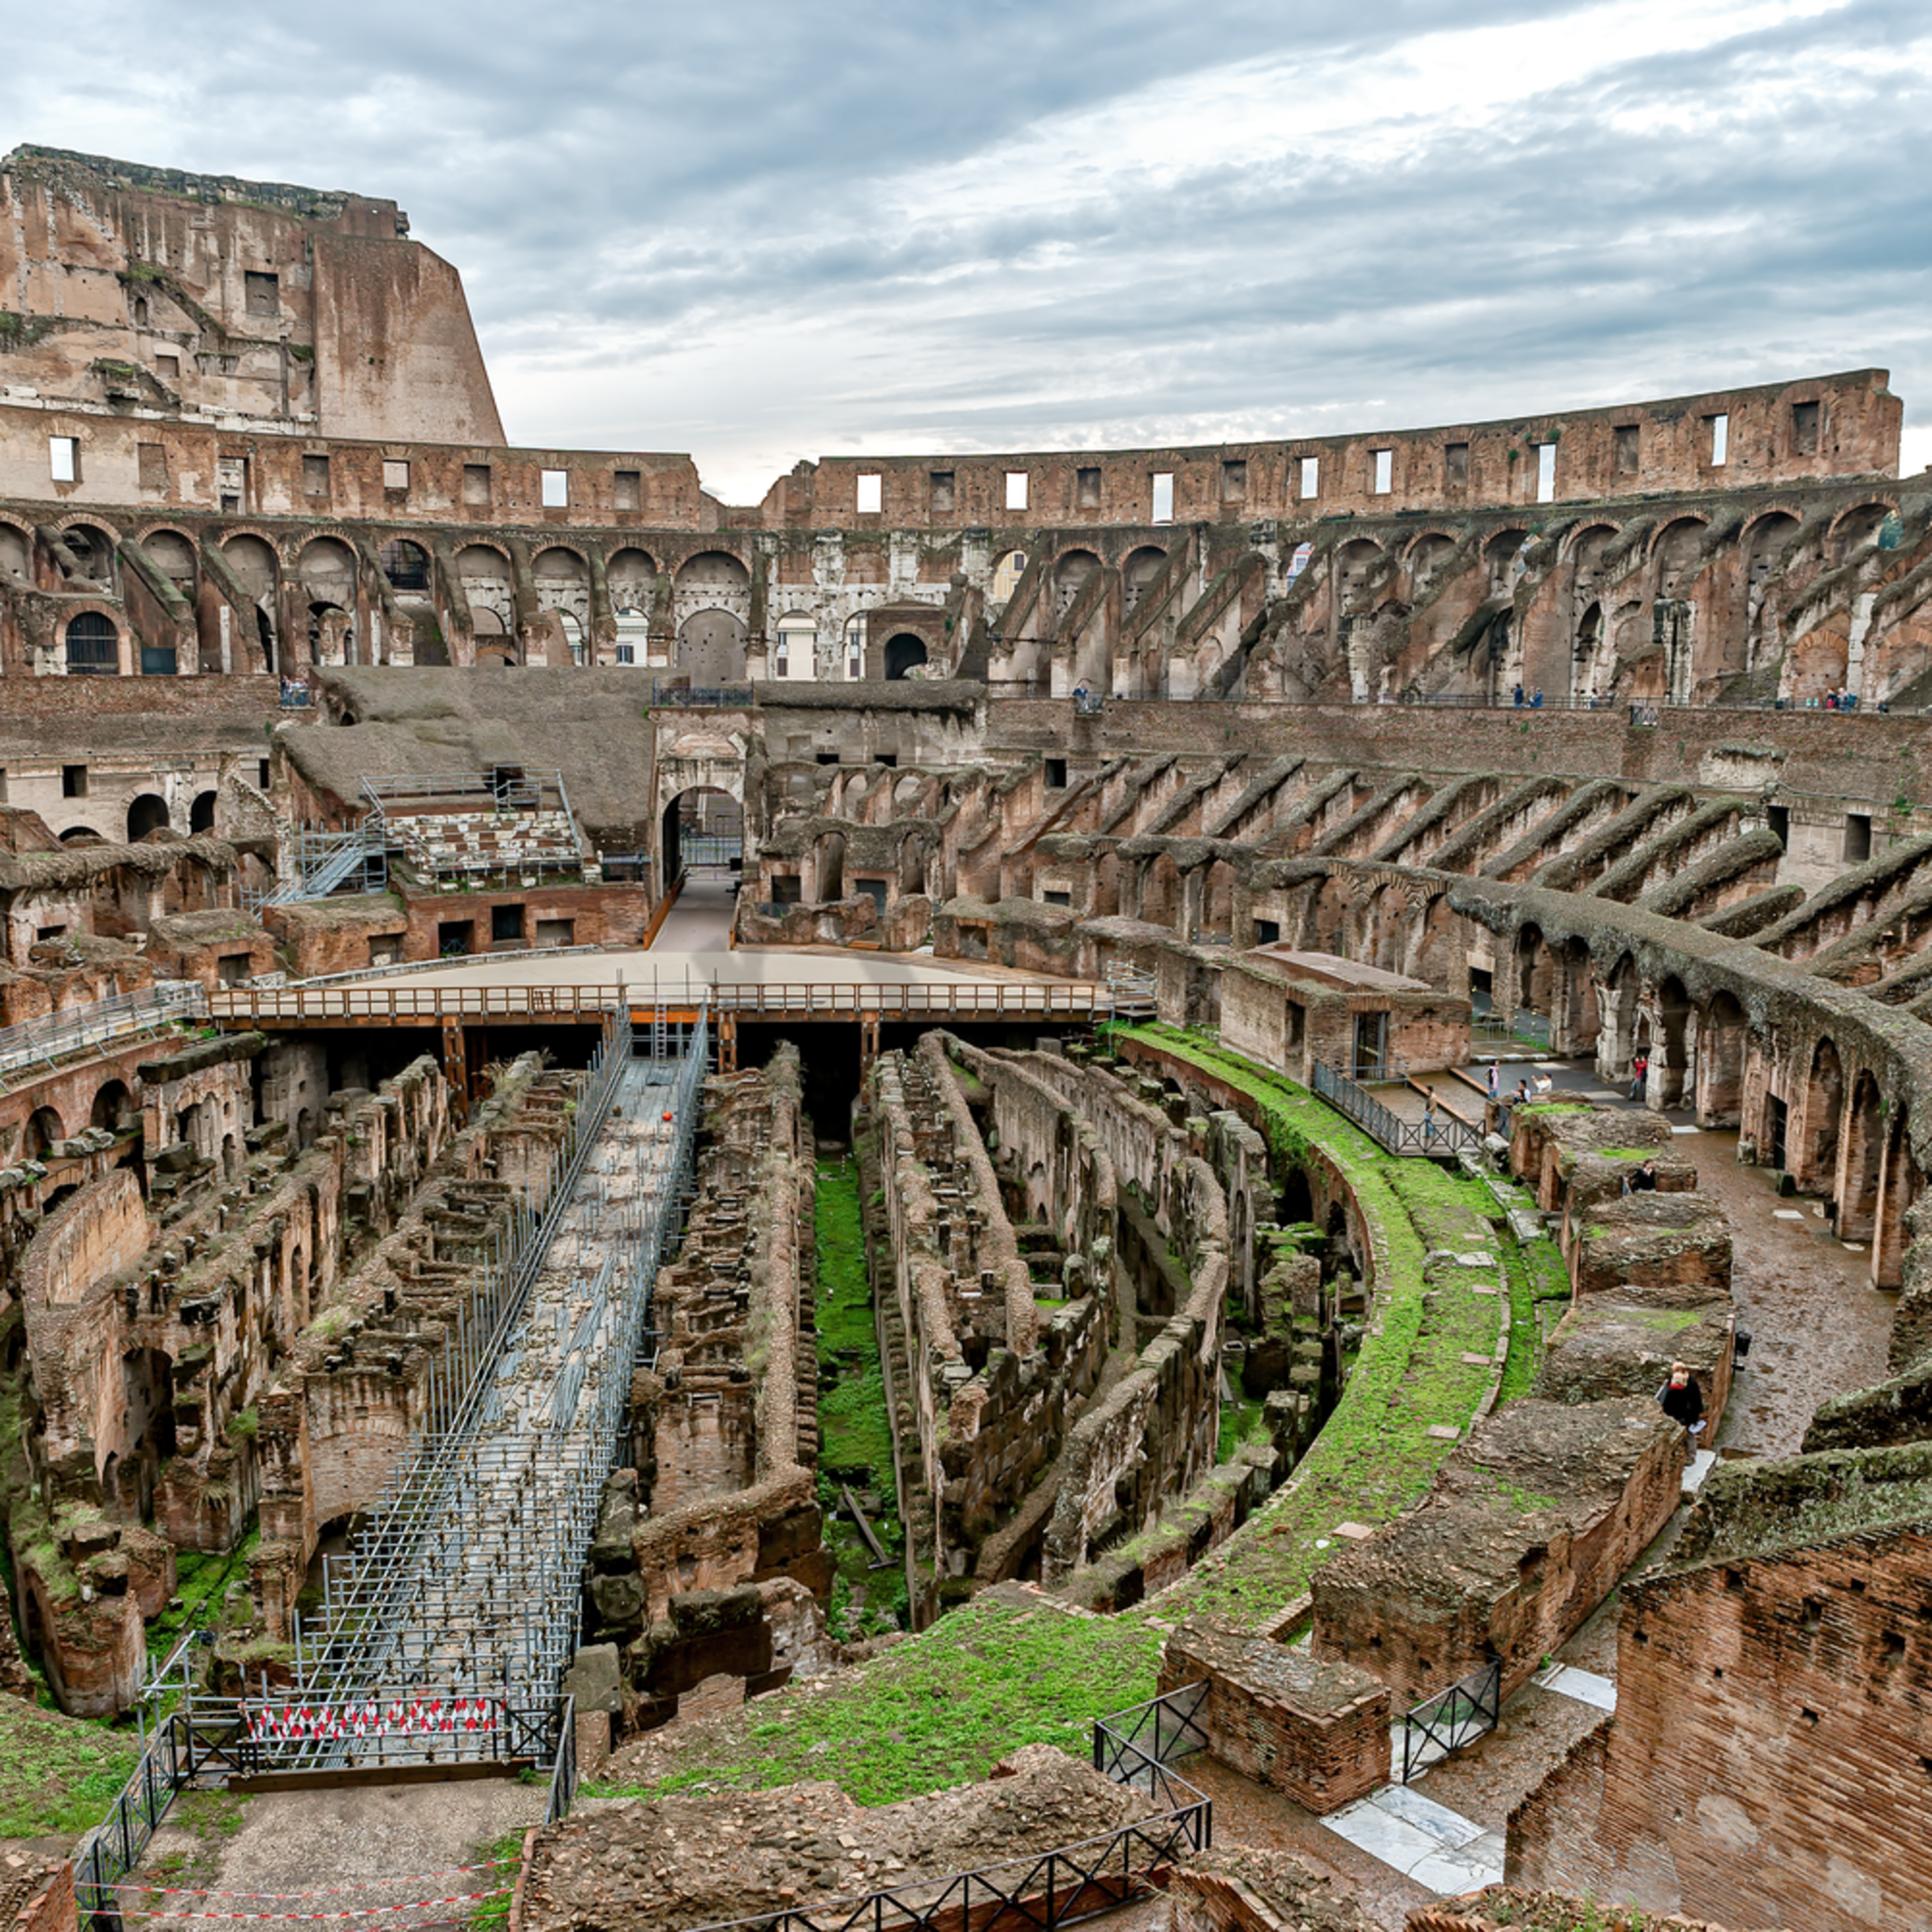 The inside of the roman colosseum rome italy syq9hr